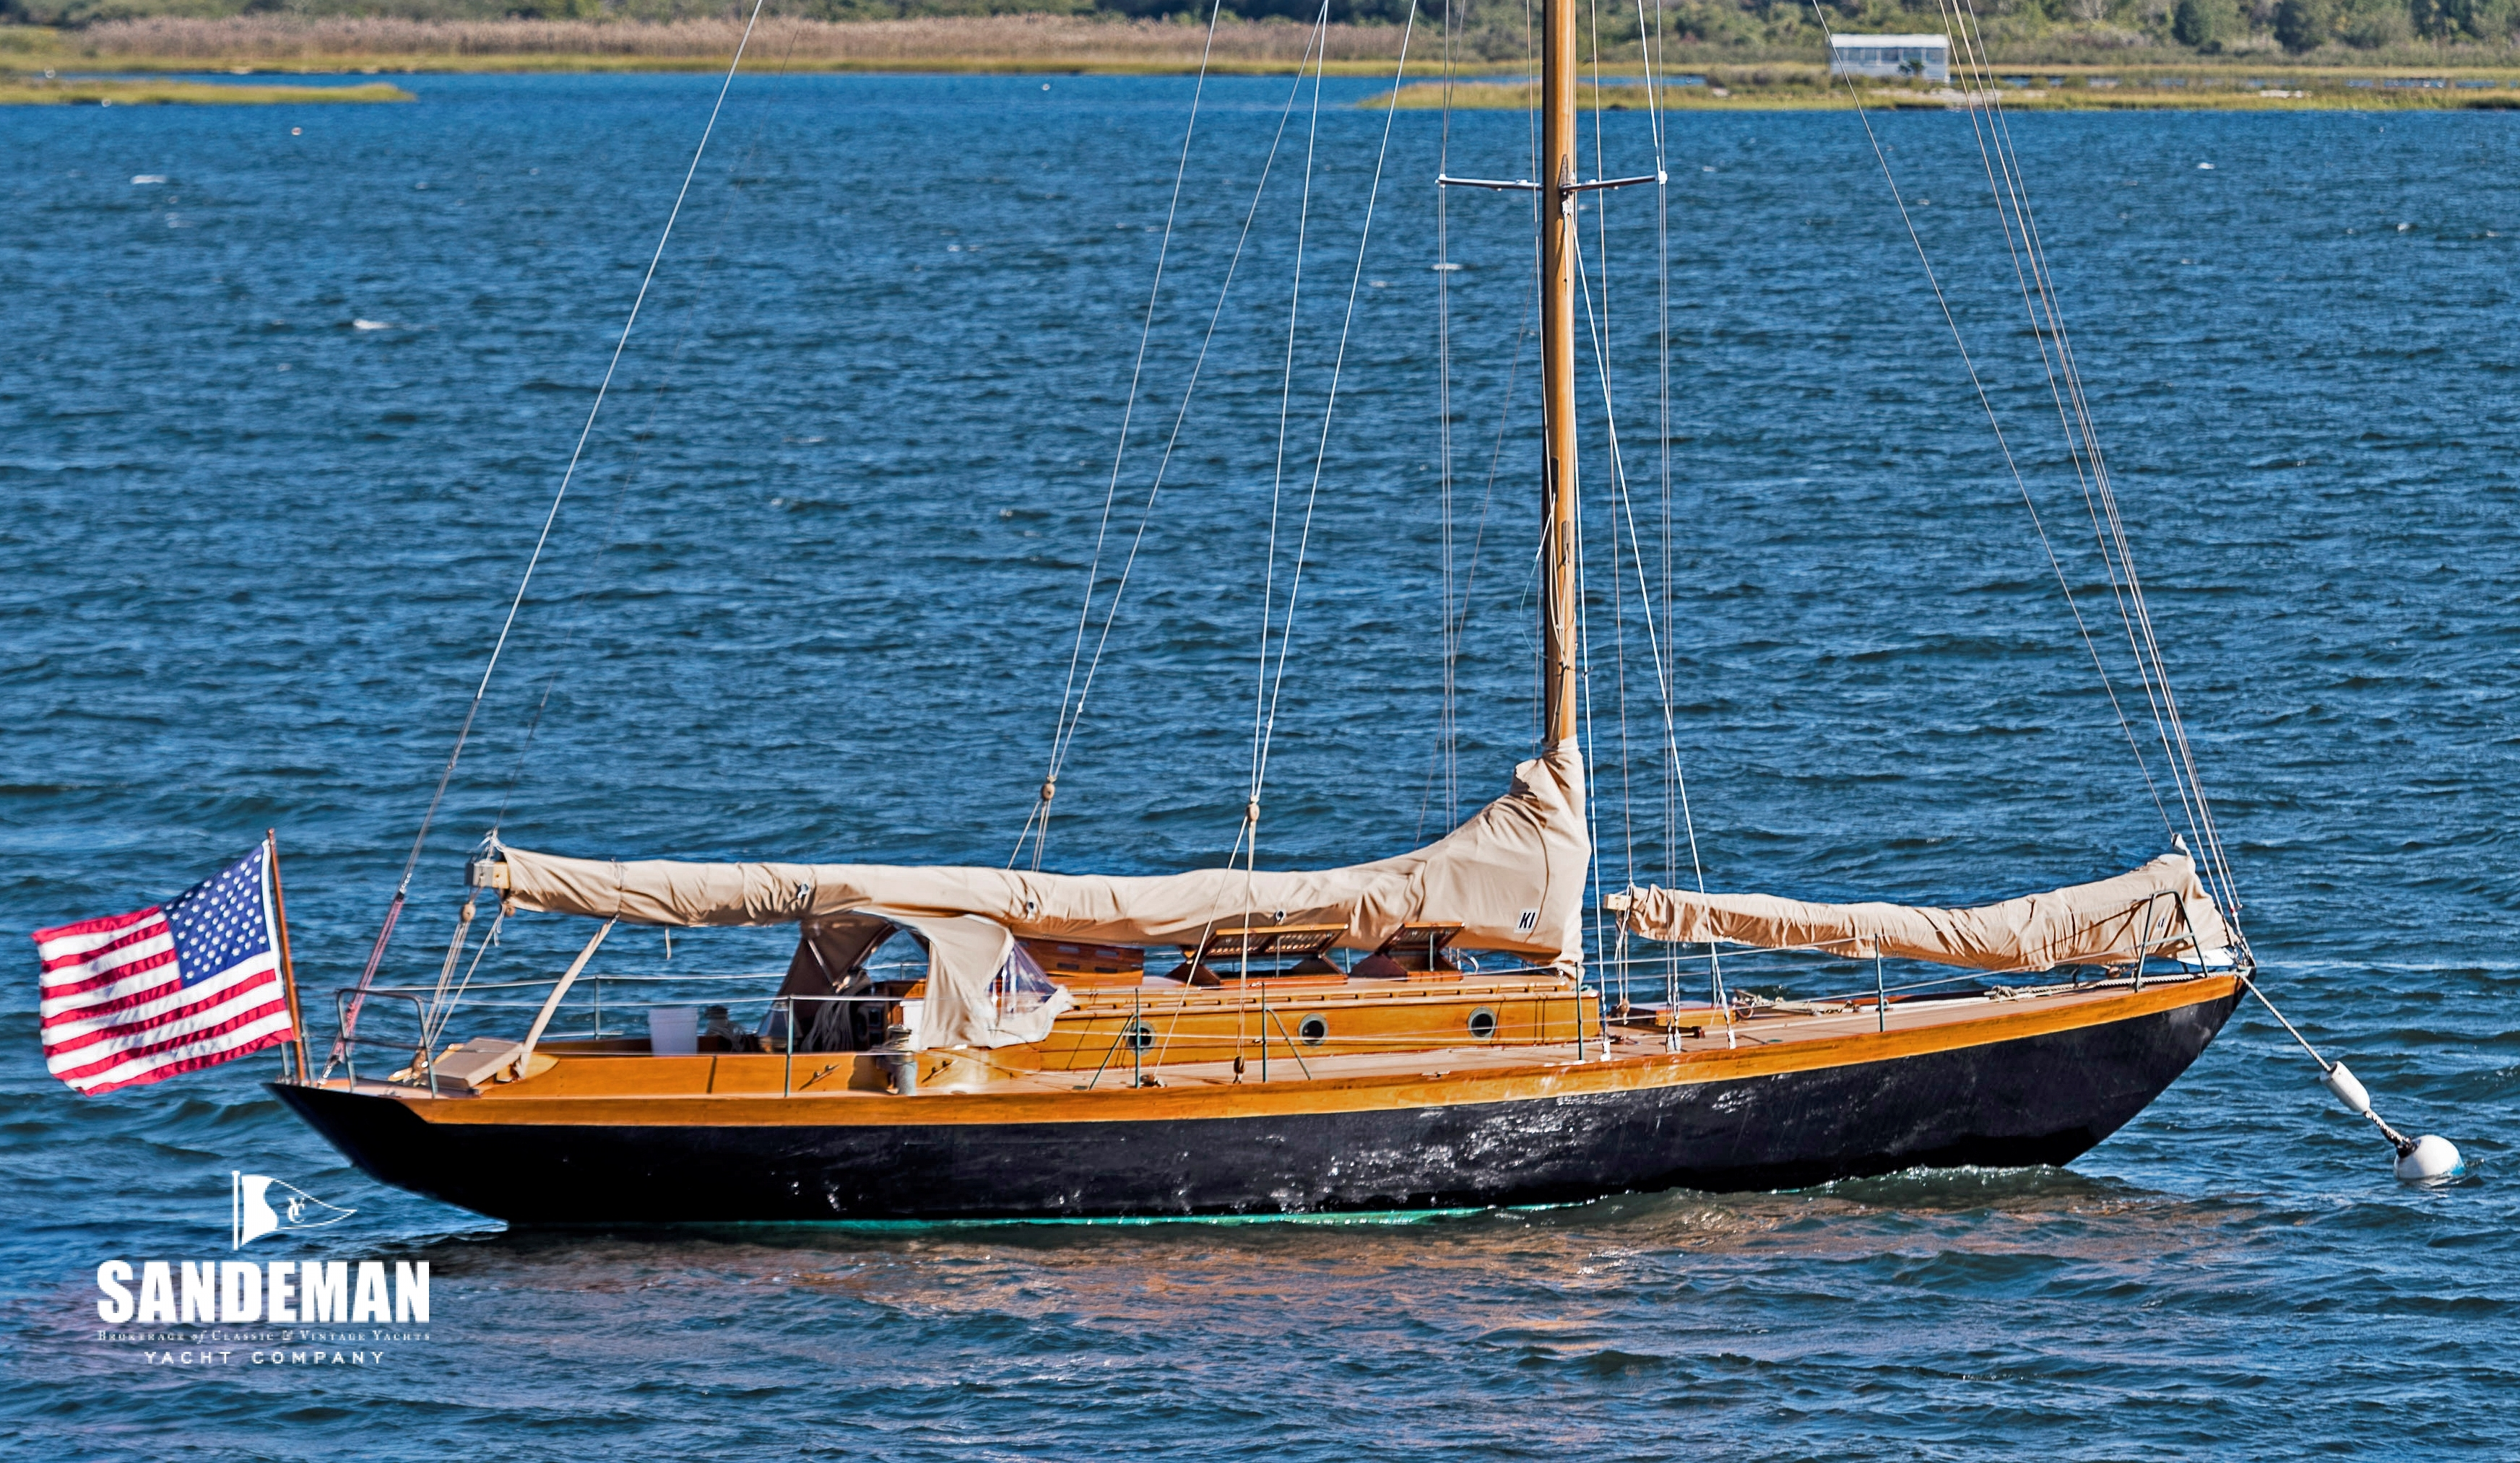 Herreshoff Fishers Island 31 43 Ft Sloop 1929 Sandeman Yacht Company To Boat Builders And Recreational Boats Typical Wiring Diagram Kestrel New Main